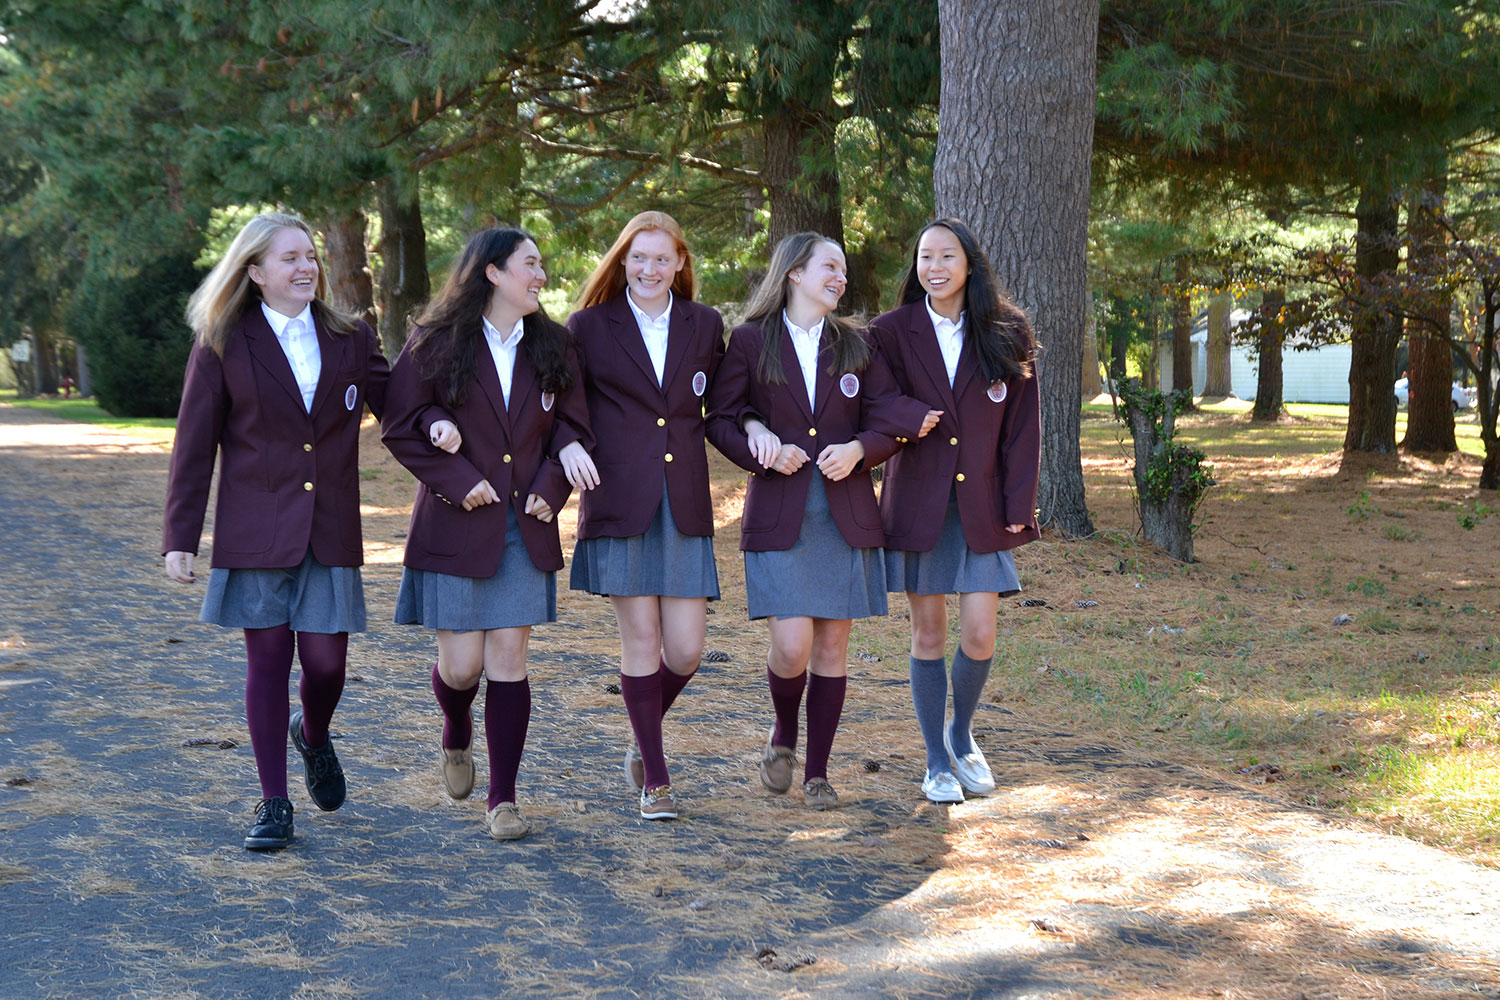 Villa girls walking